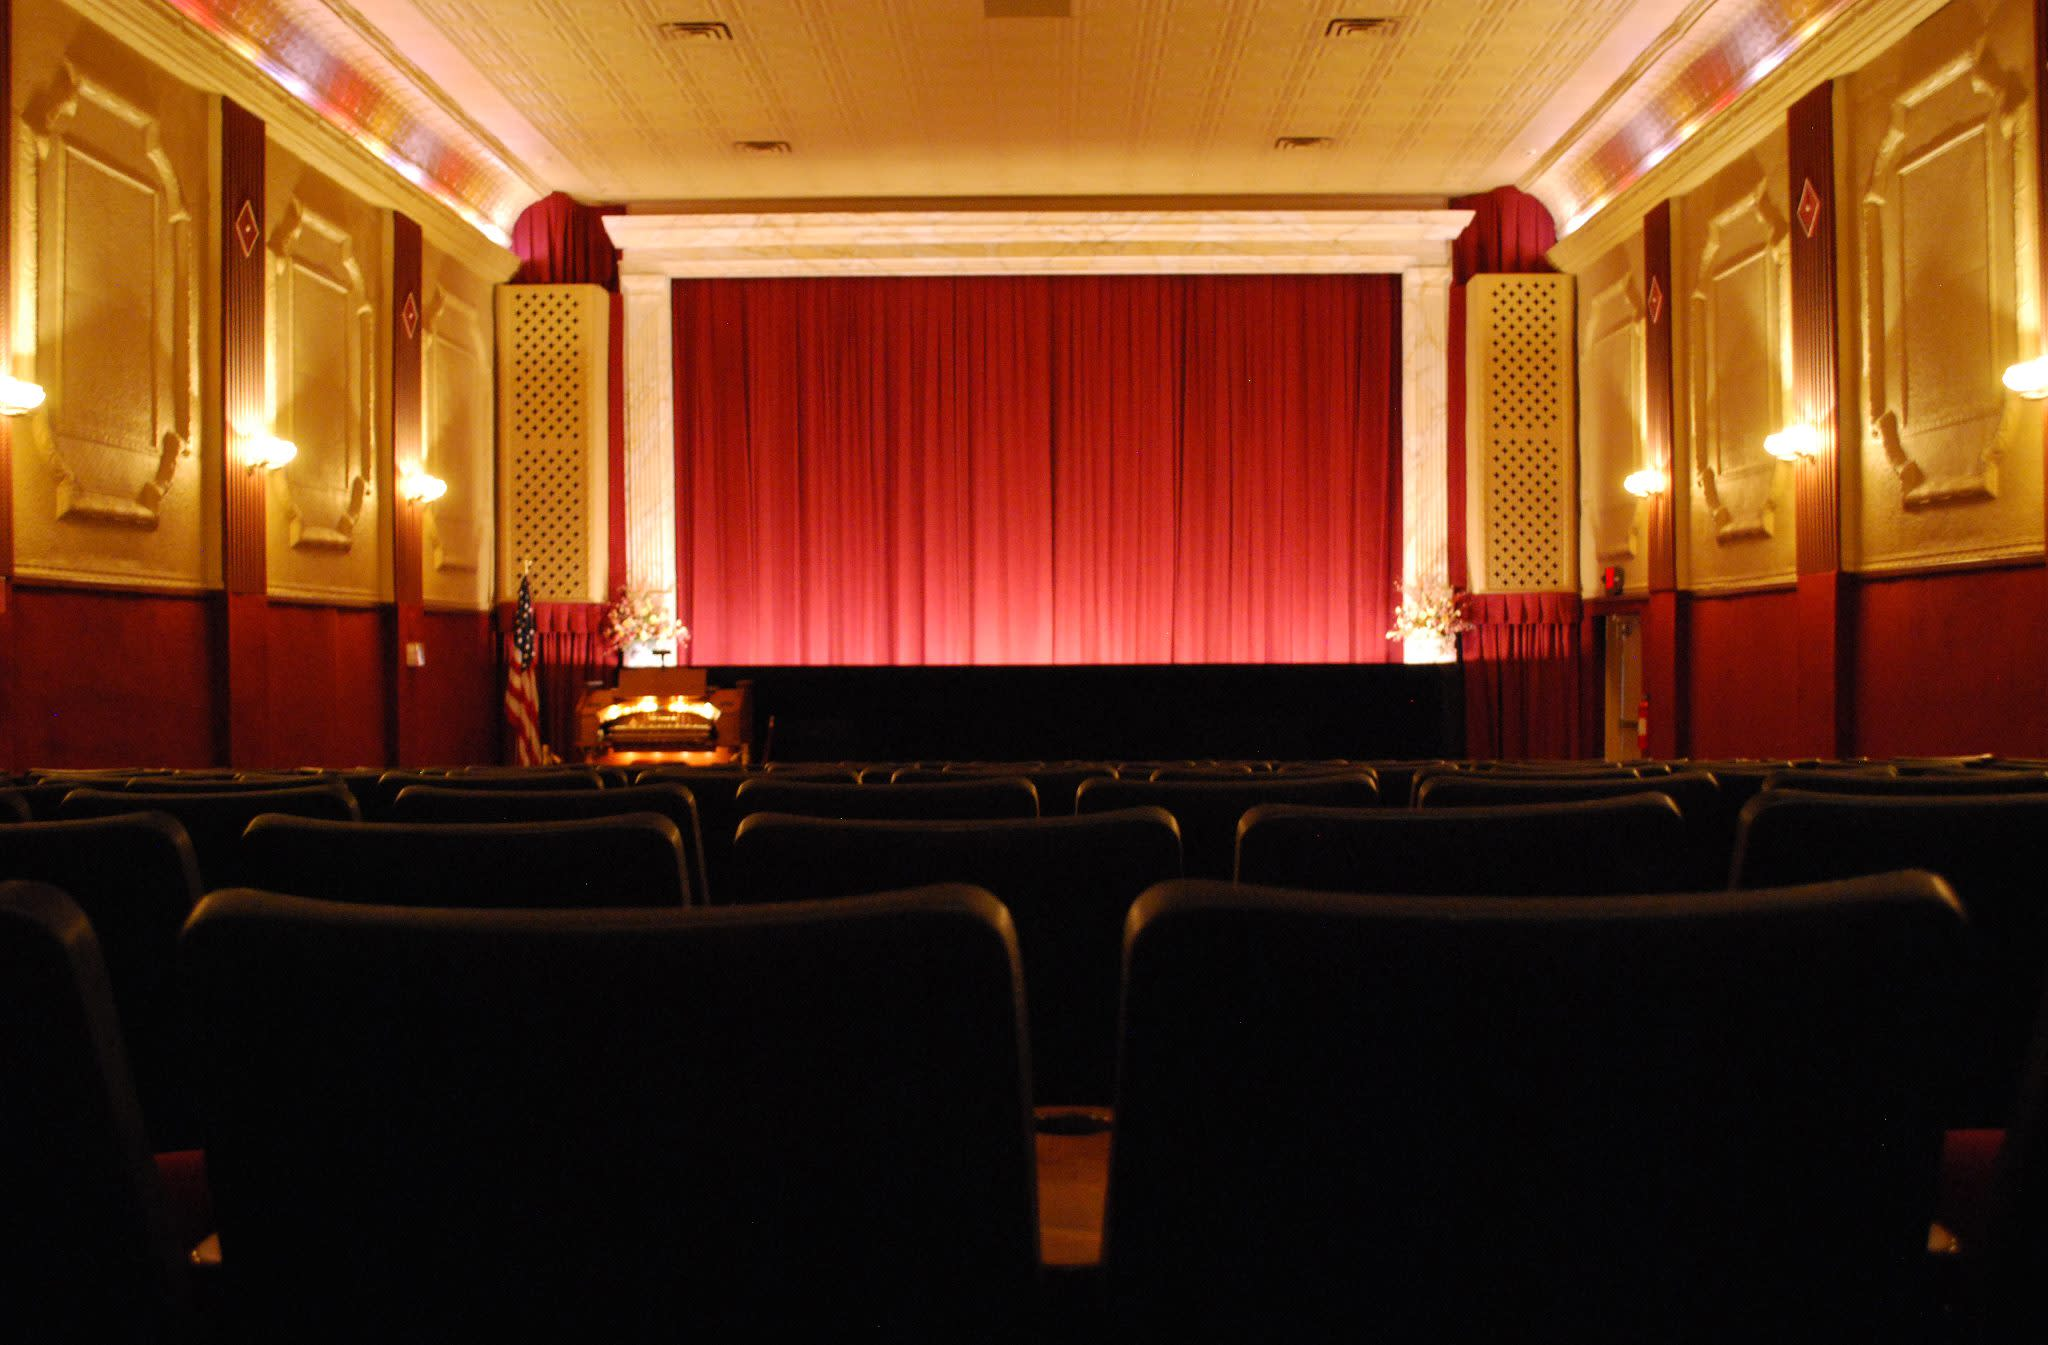 Catch a movie at the historic Grand Theater in East Greenville.